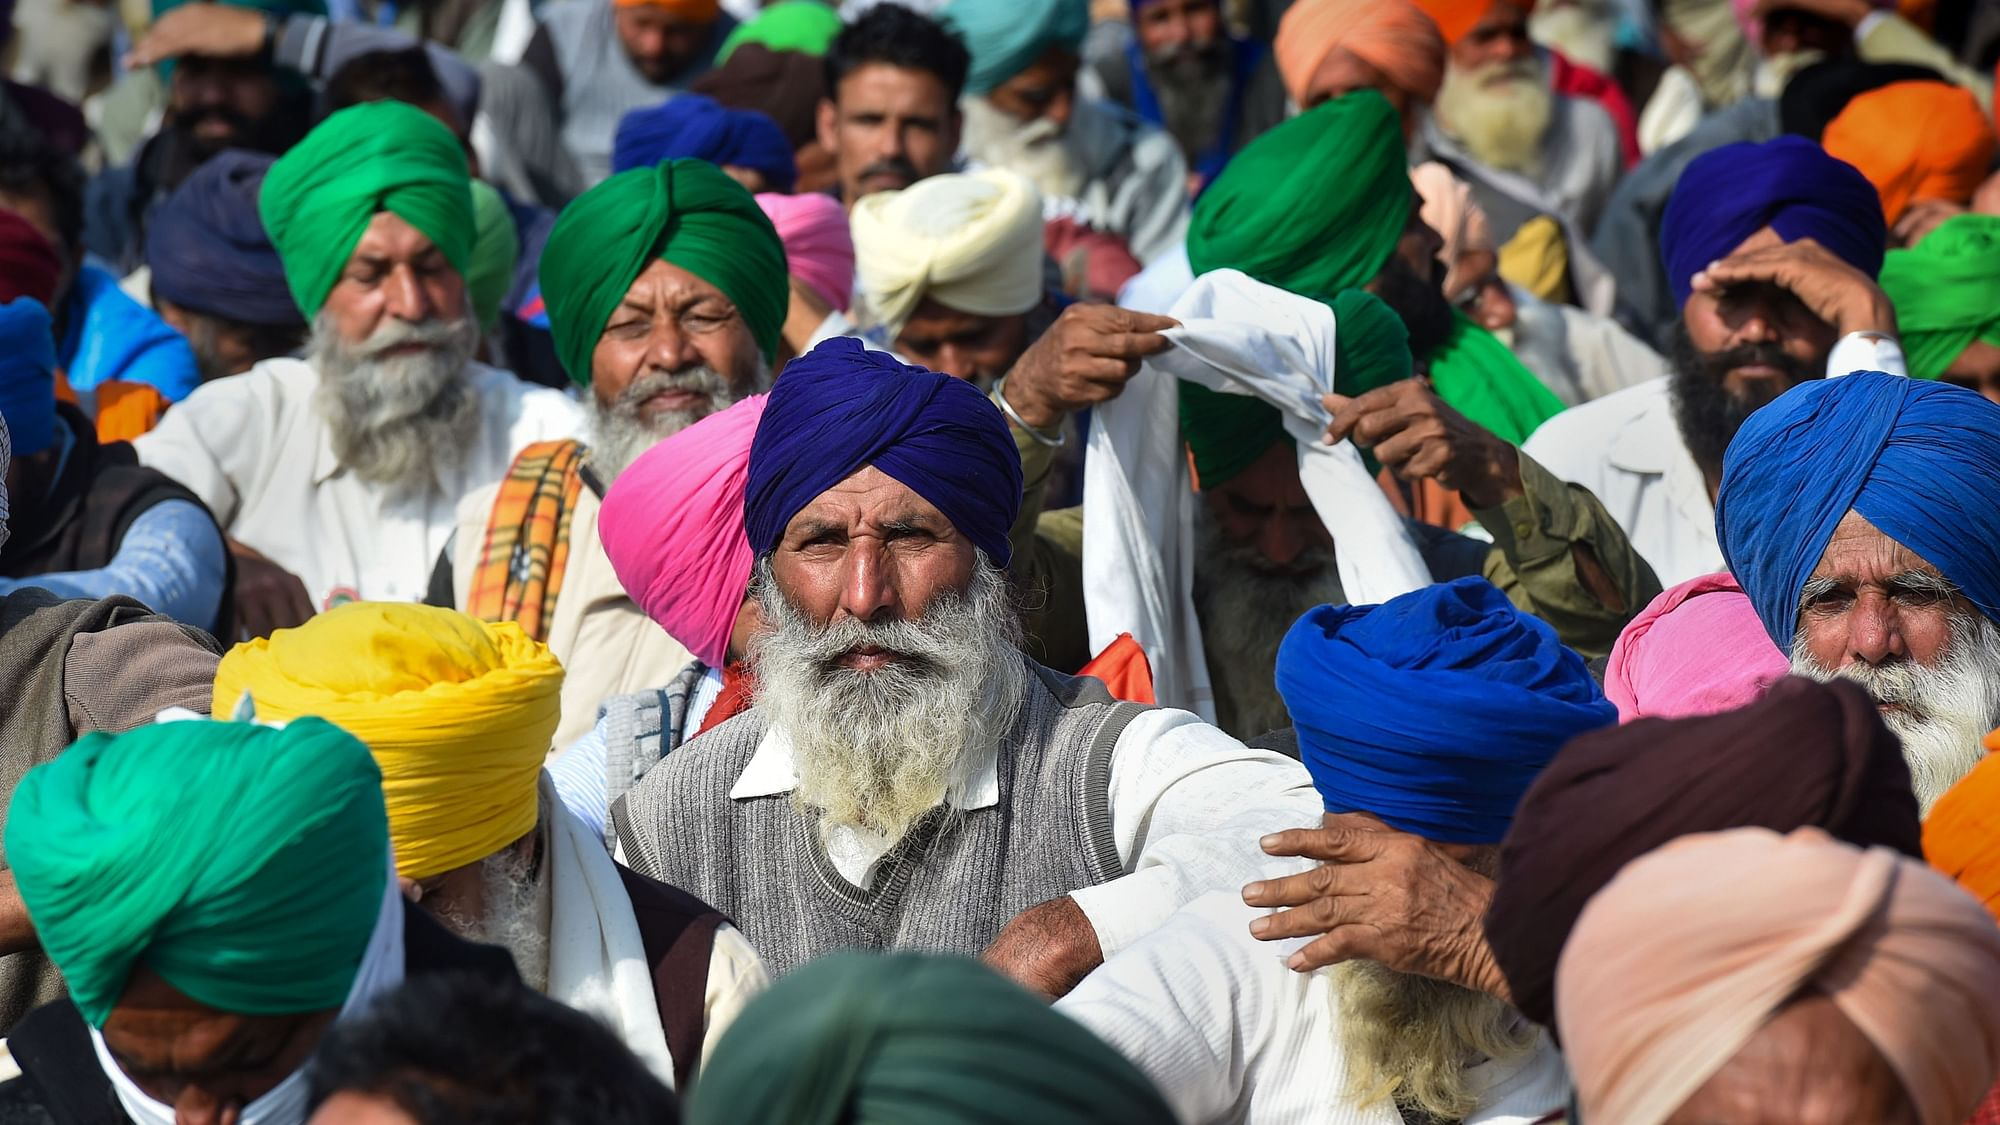 Farmers from Punjab and Haryana at Delhi border, protesting against the new agri laws. Image used for representational purposes.